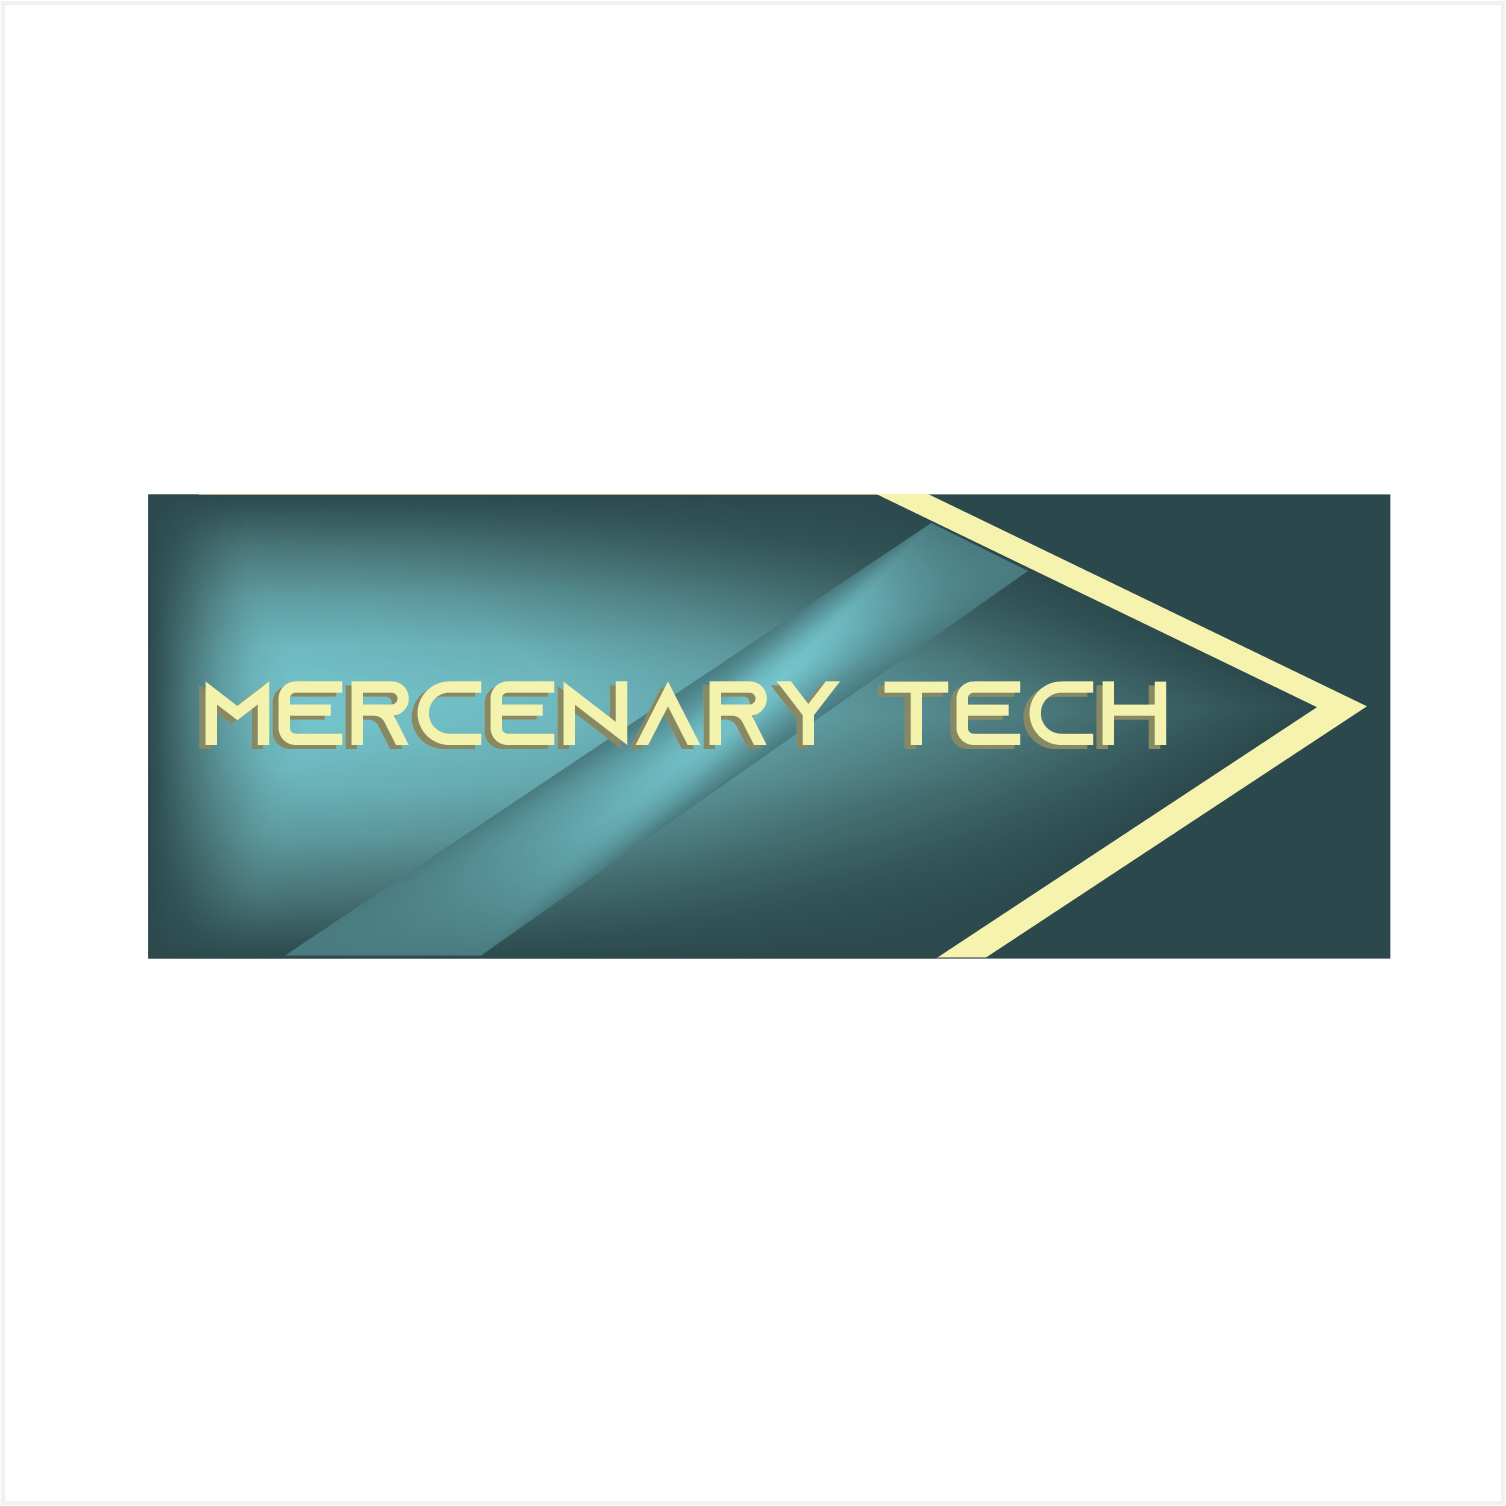 Mercenary Tech